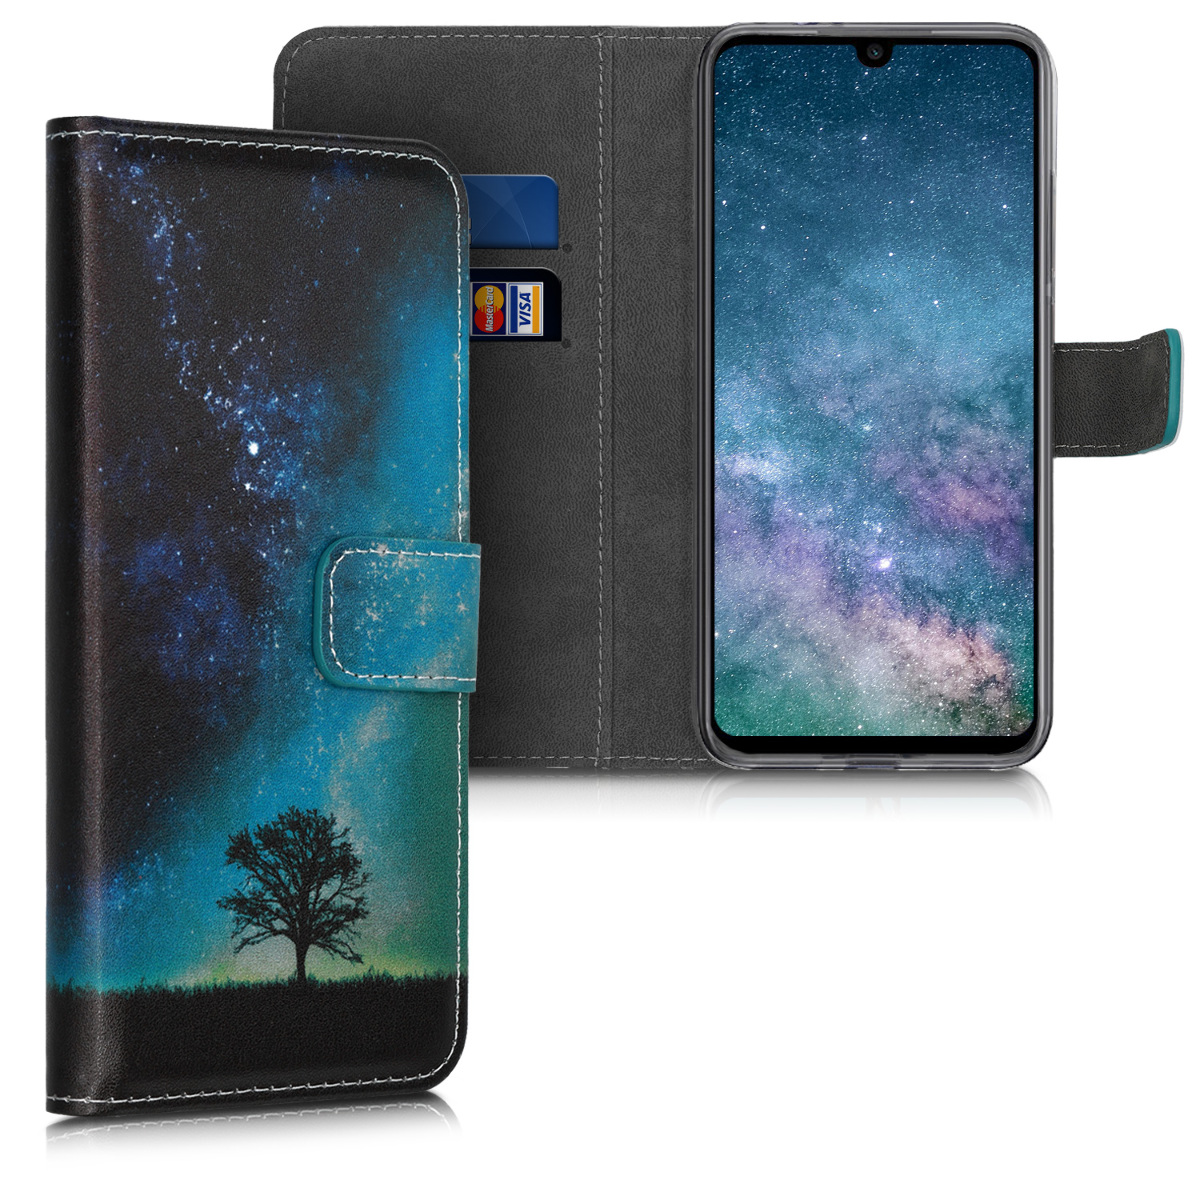 KW Θήκη - Πορτοφόλι Xiaomi Redmi Note 7 / Note 7 Pro - PU Leather Protective Flip Cover - Blue / Grey / Black (47572.03)